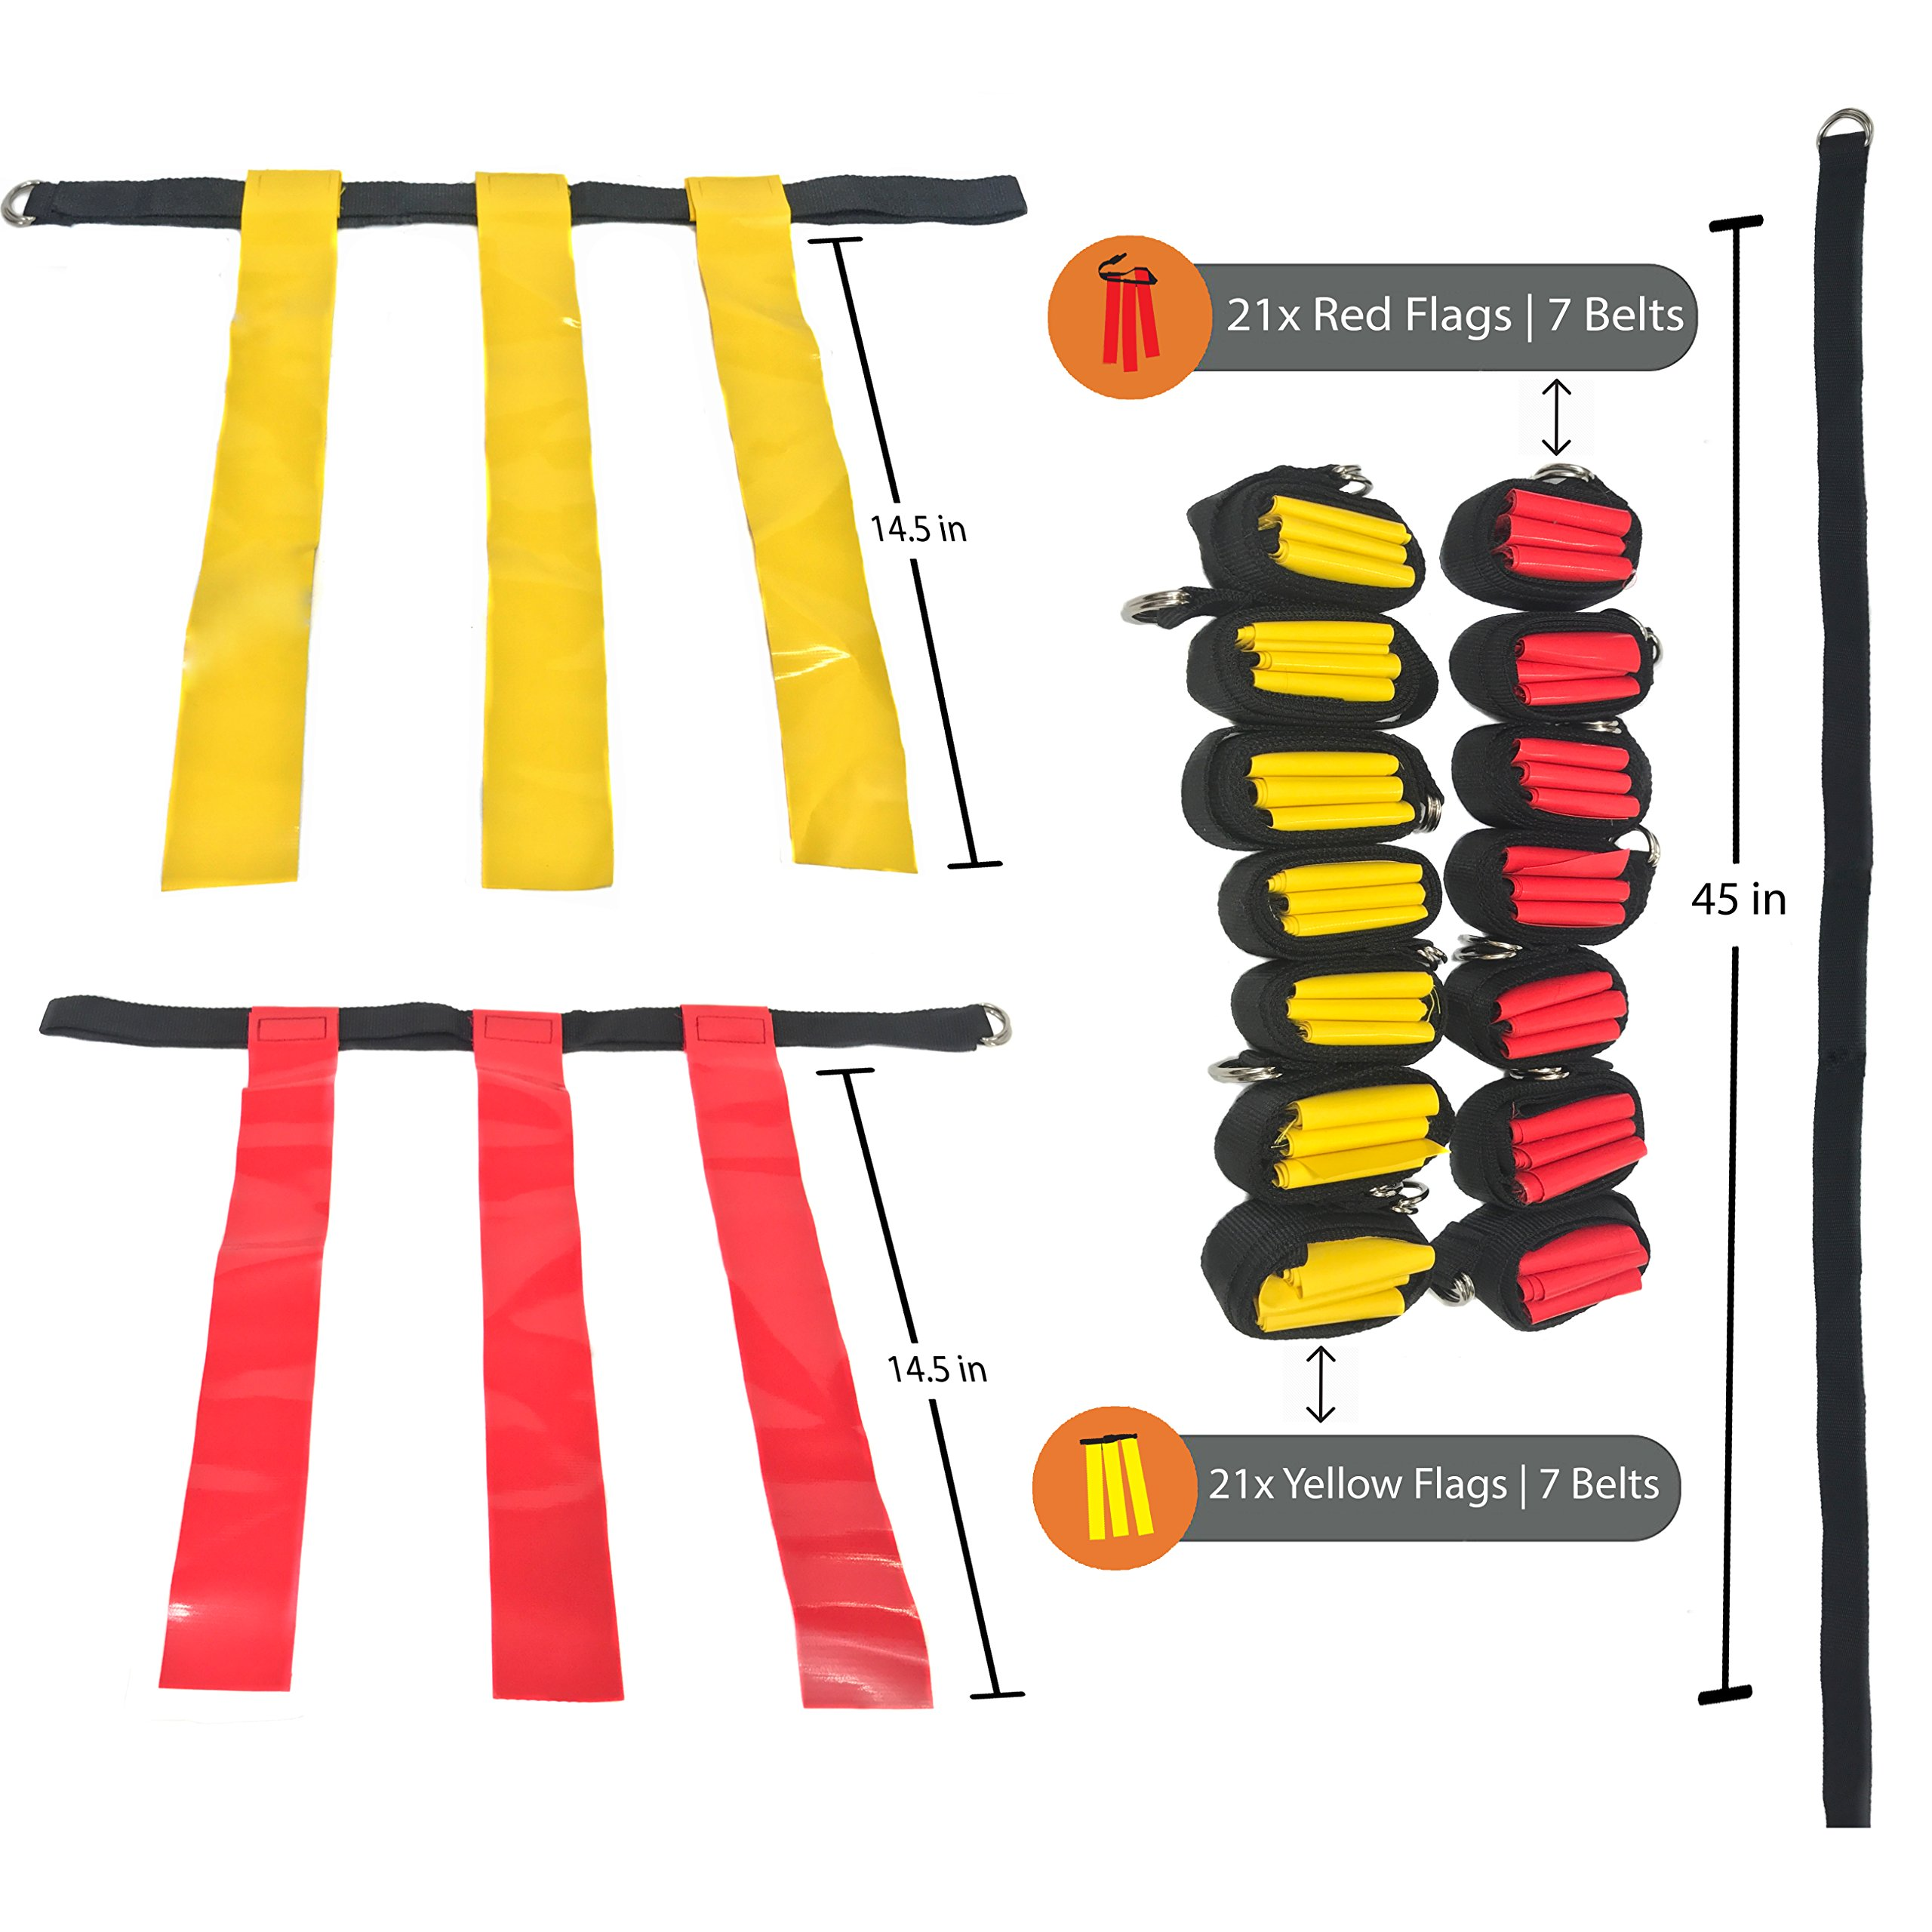 14 Player Flag Football Set - 65 Total Pieces, Football Flags For Kids And Adults, Youth Football Kit | Includes 14 Belts, 3 Flags Each, 6 Cones And Stand, Carrying Bag And a BONUS Kicking Tee by Certamen Athletics (Image #2)